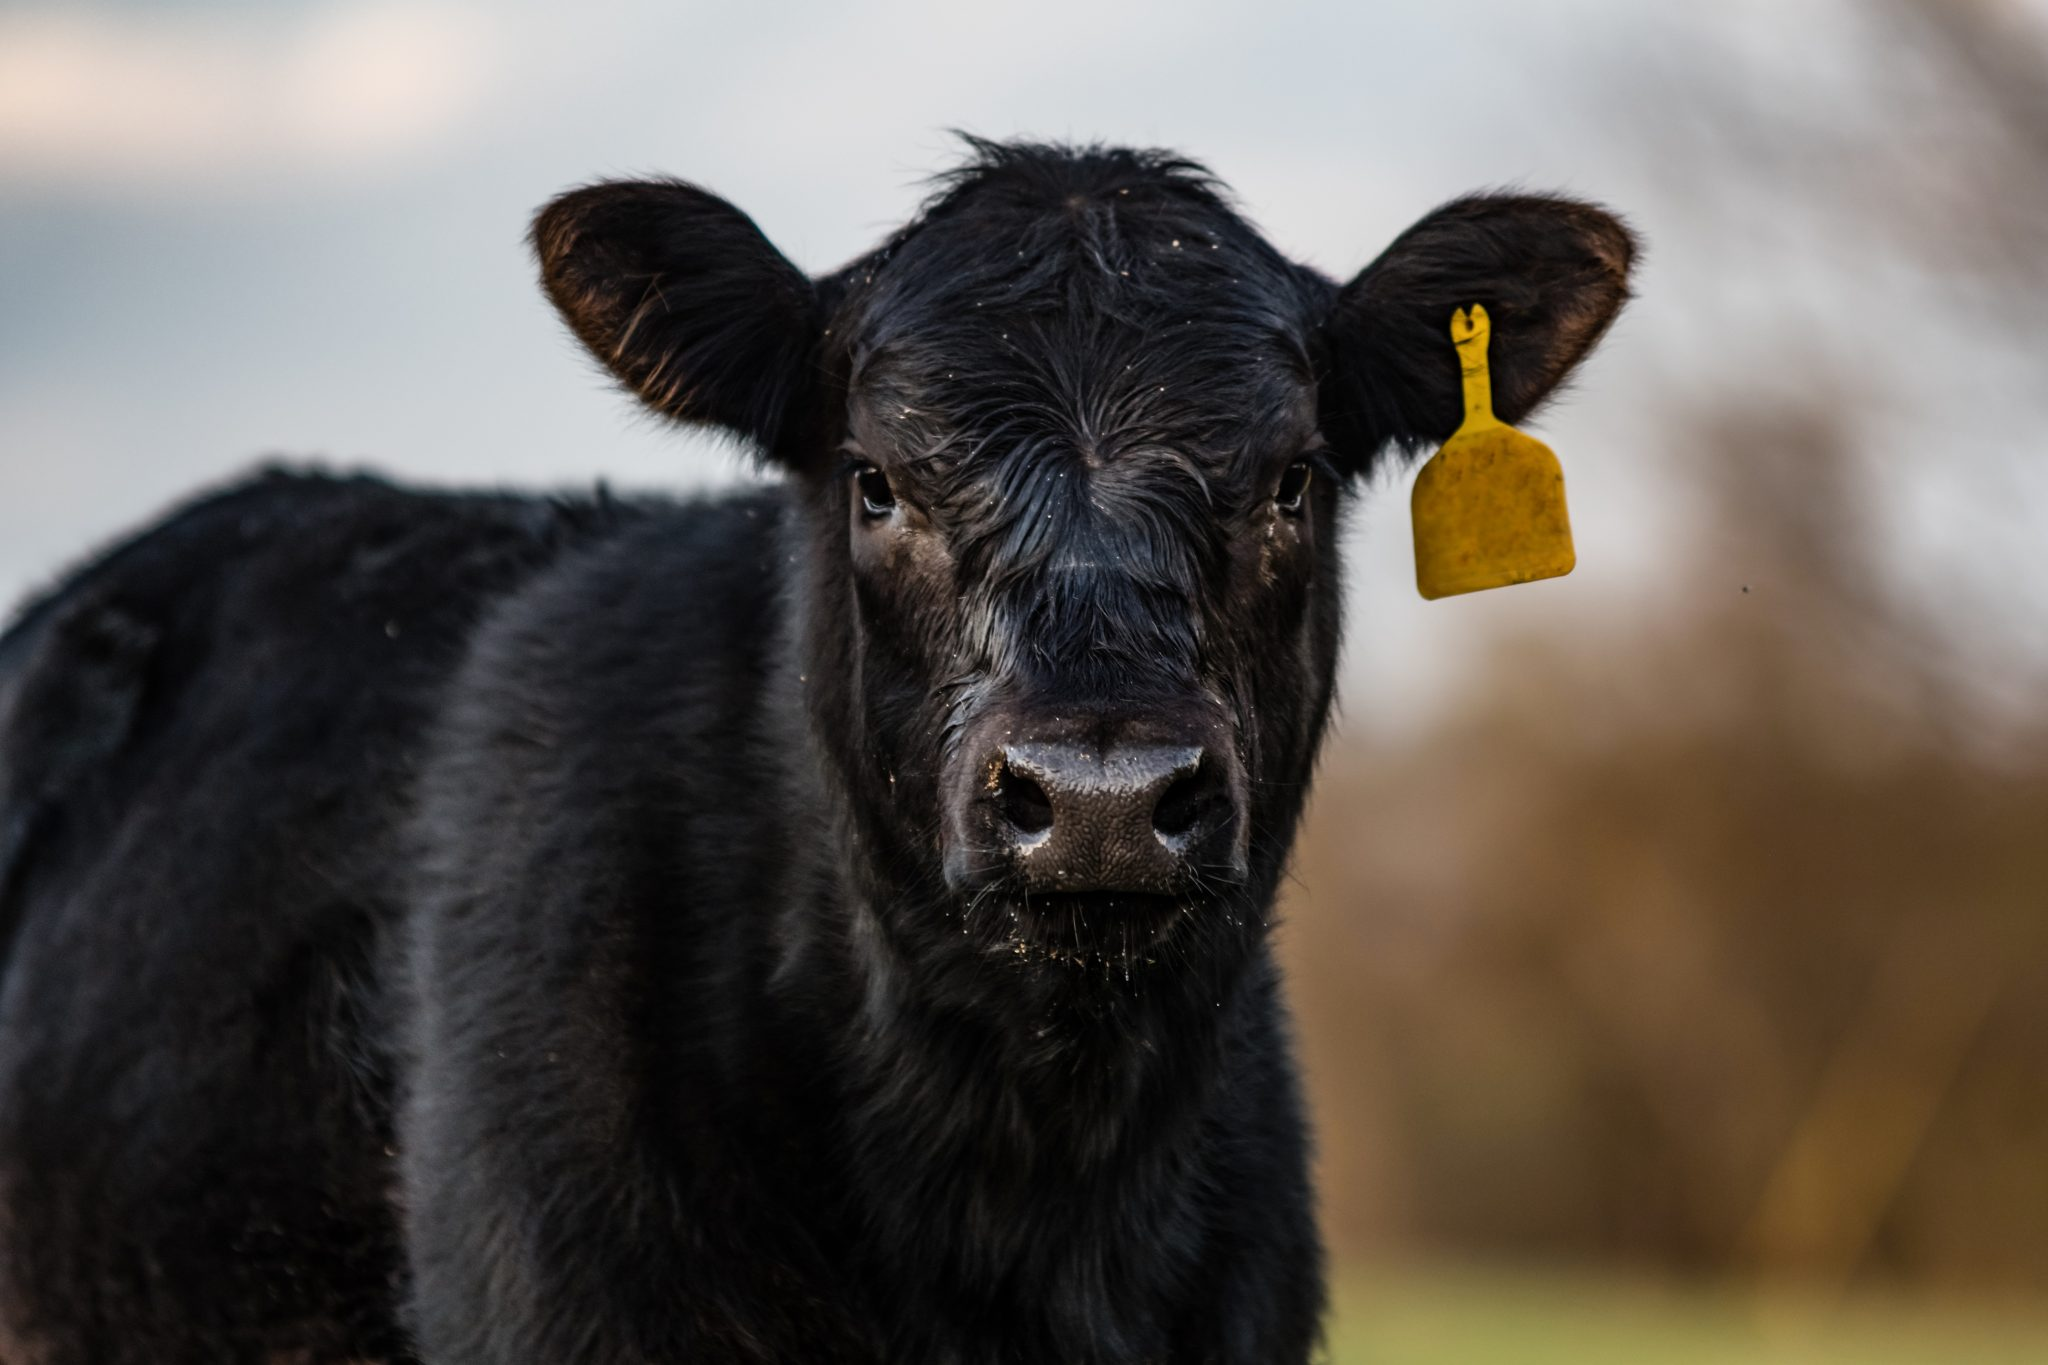 Black calf with yellow identification ear tag.